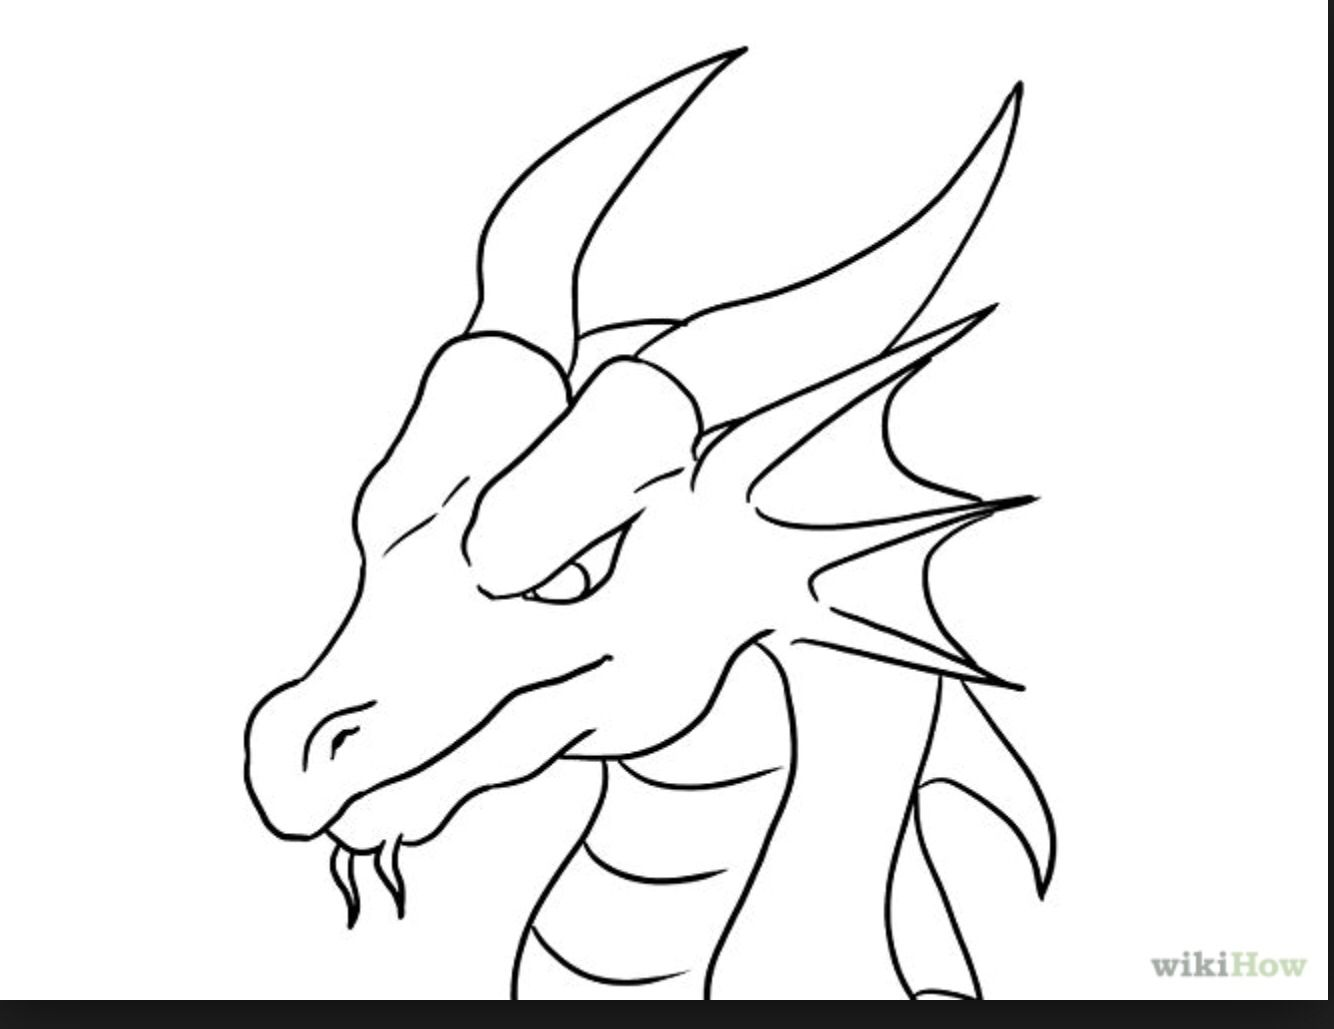 Uncategorized Dragon To Draw best 25 easy dragon drawings ideas on pinterest dinosaur about to draw dragons